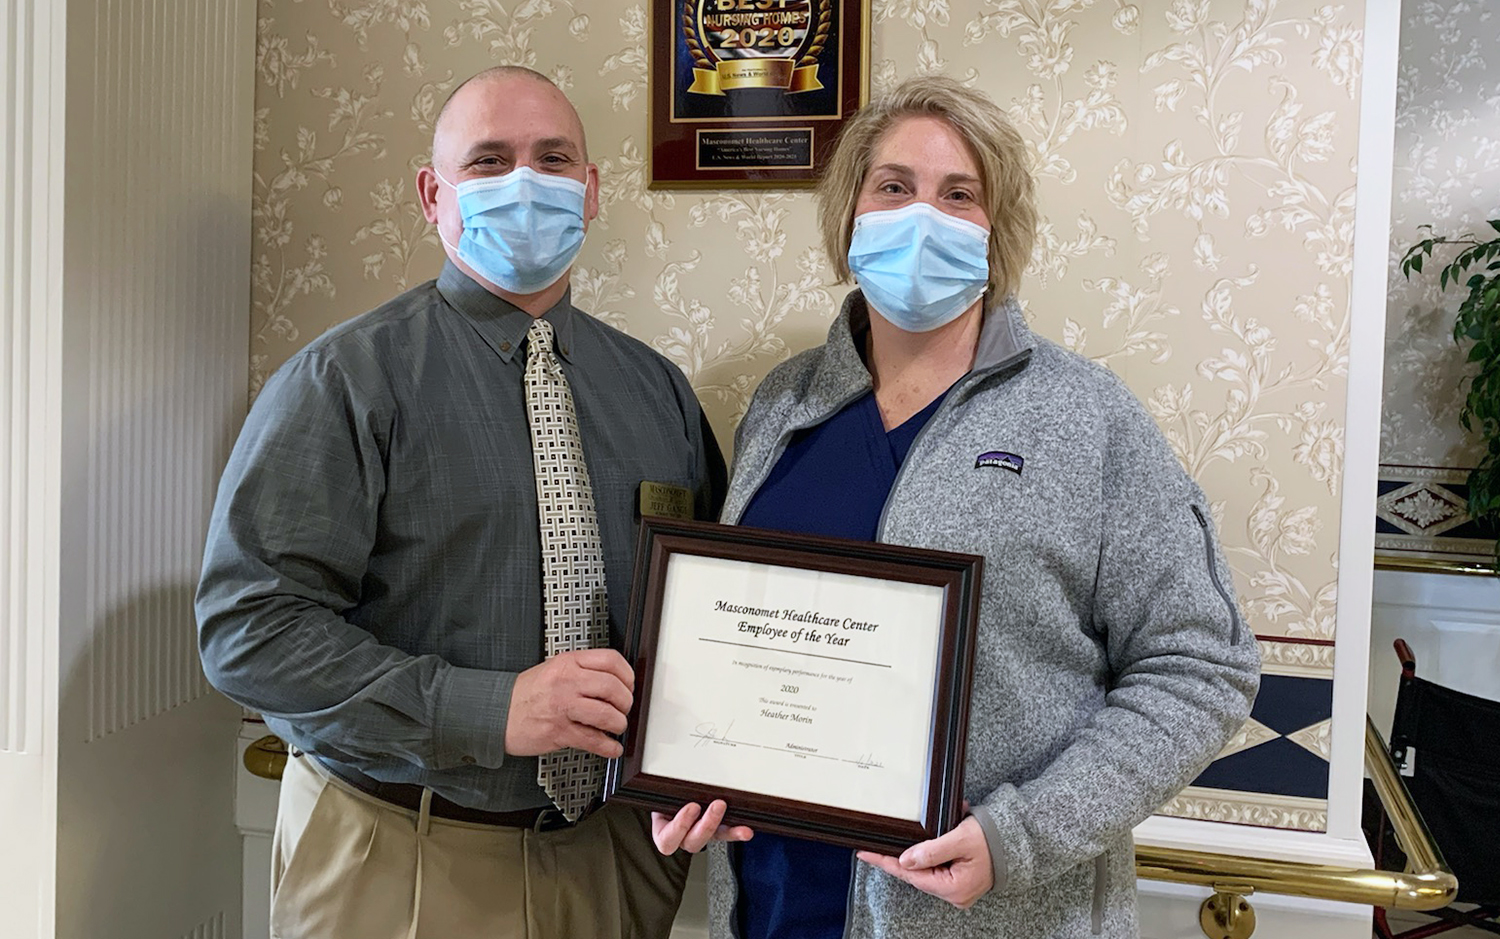 Heather Morin, RN, Clinical Liaison, of Masconomet Healthcare Center Named Employee of the Year